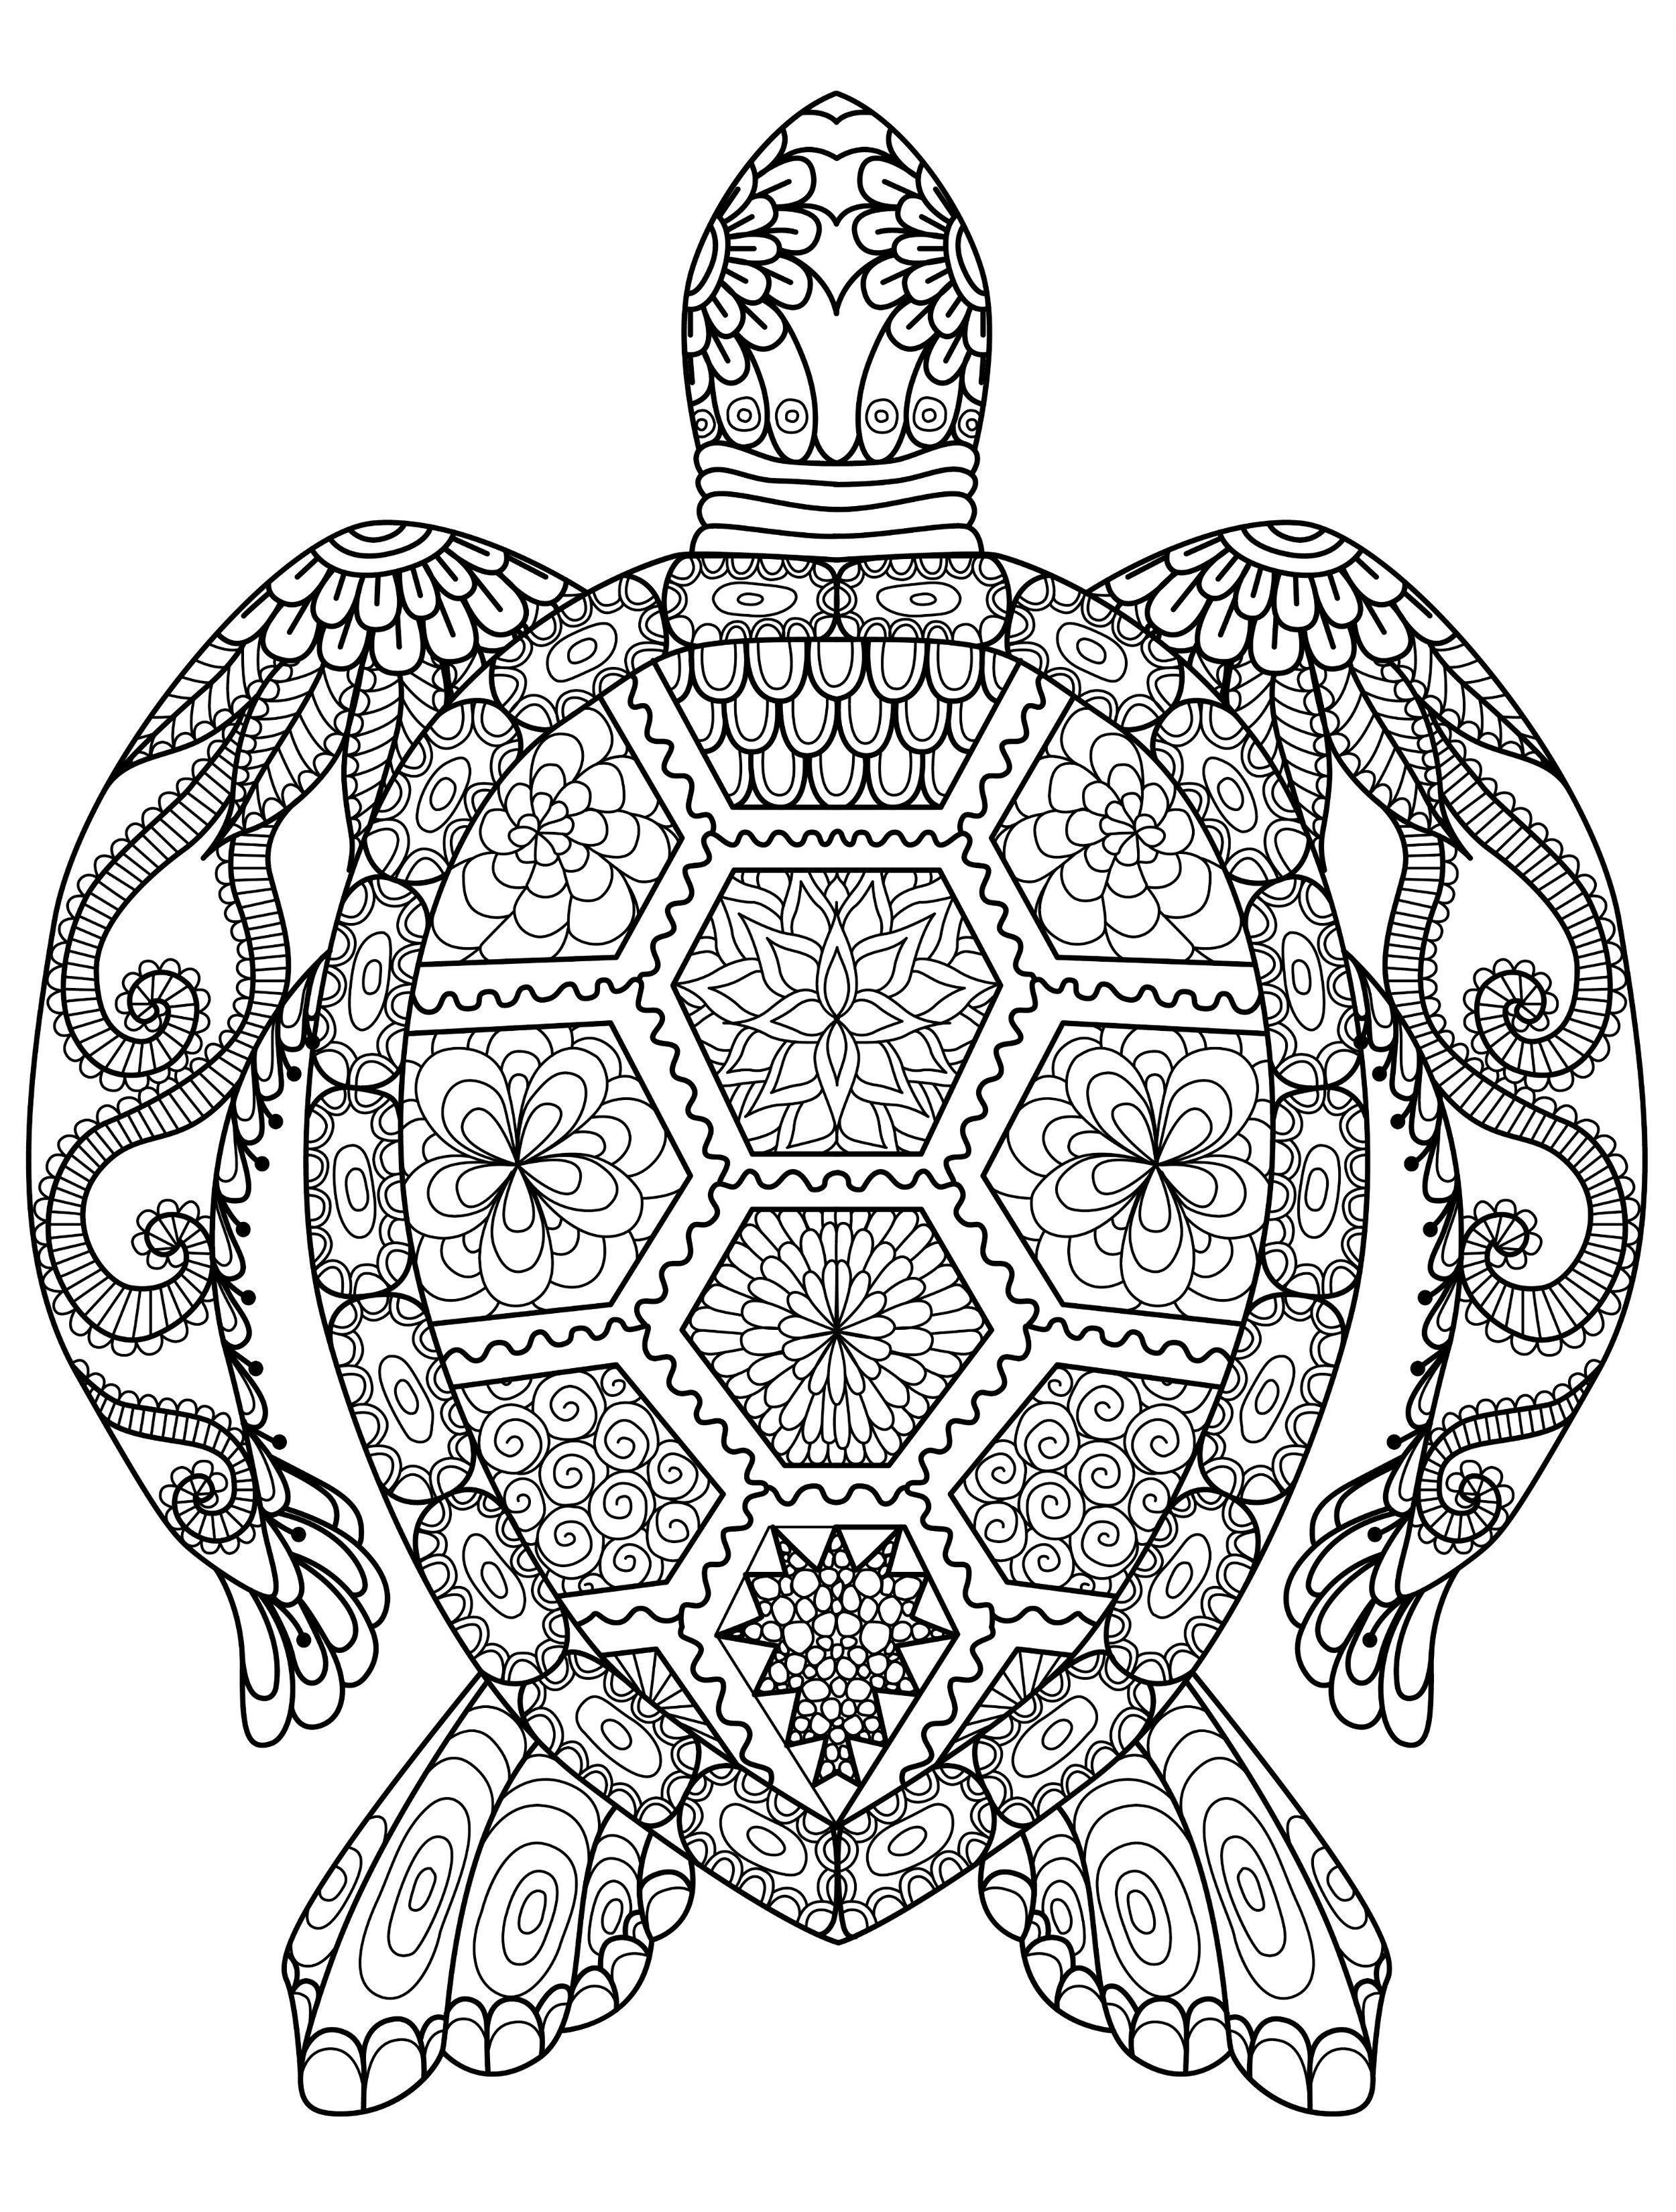 Animal Mandala Coloring Pages | Turtle coloring pages ... | mandala art coloring pages animals